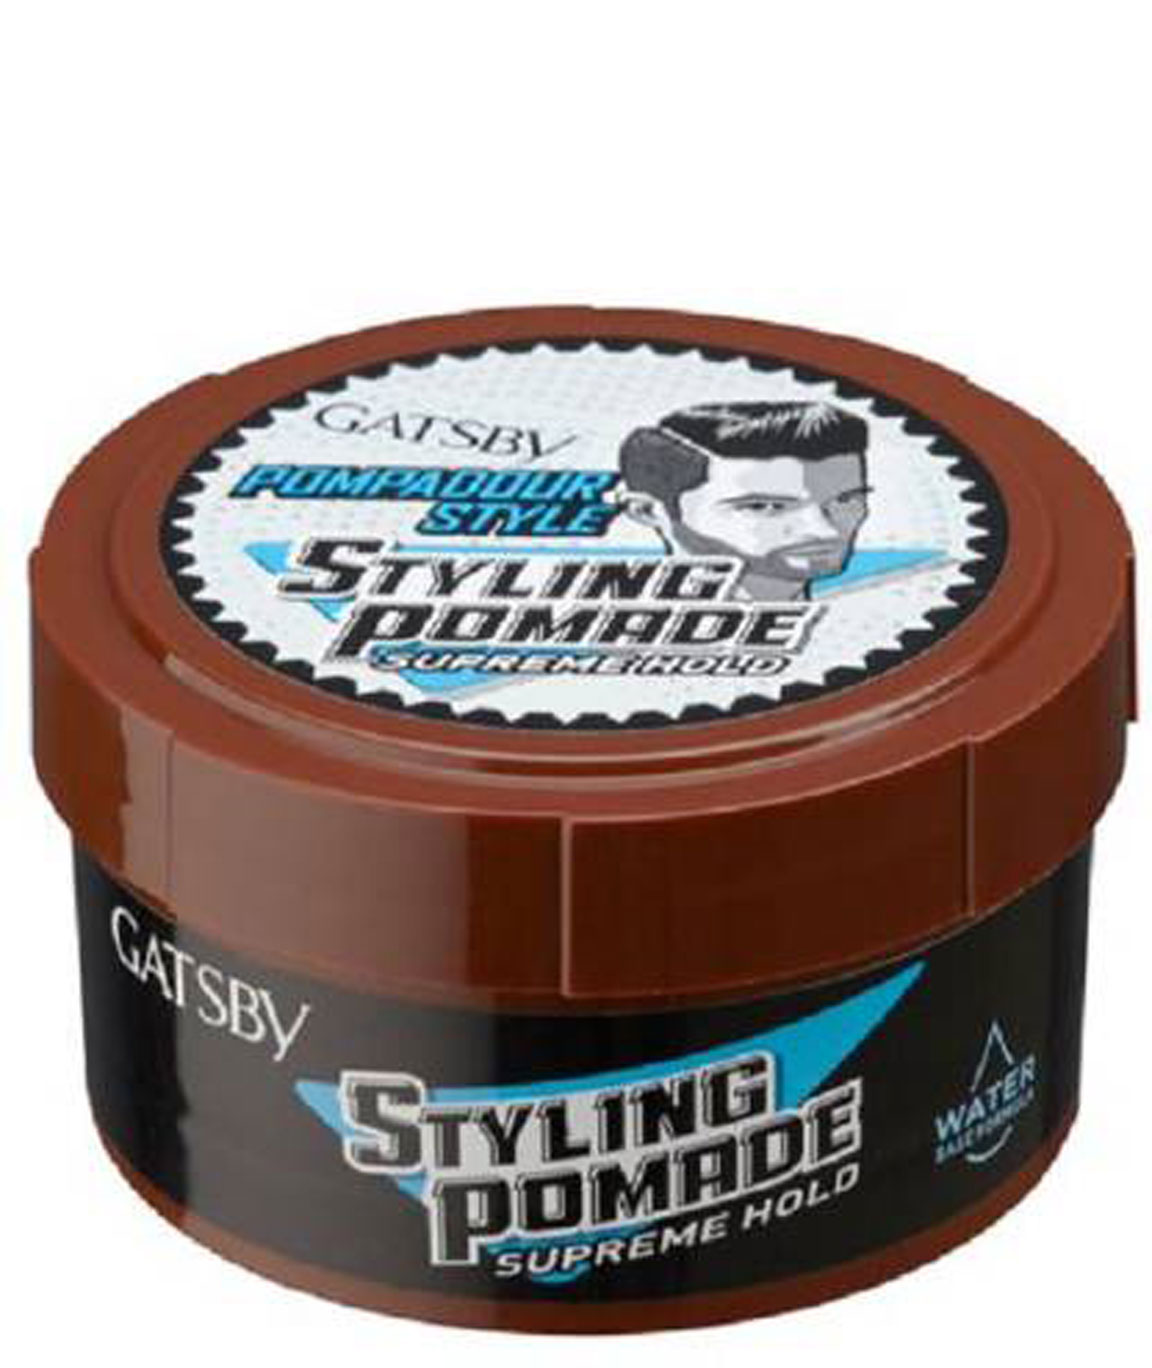 GATSBY STYLING POMADE SUPREME HOLD CLAY (75 G)